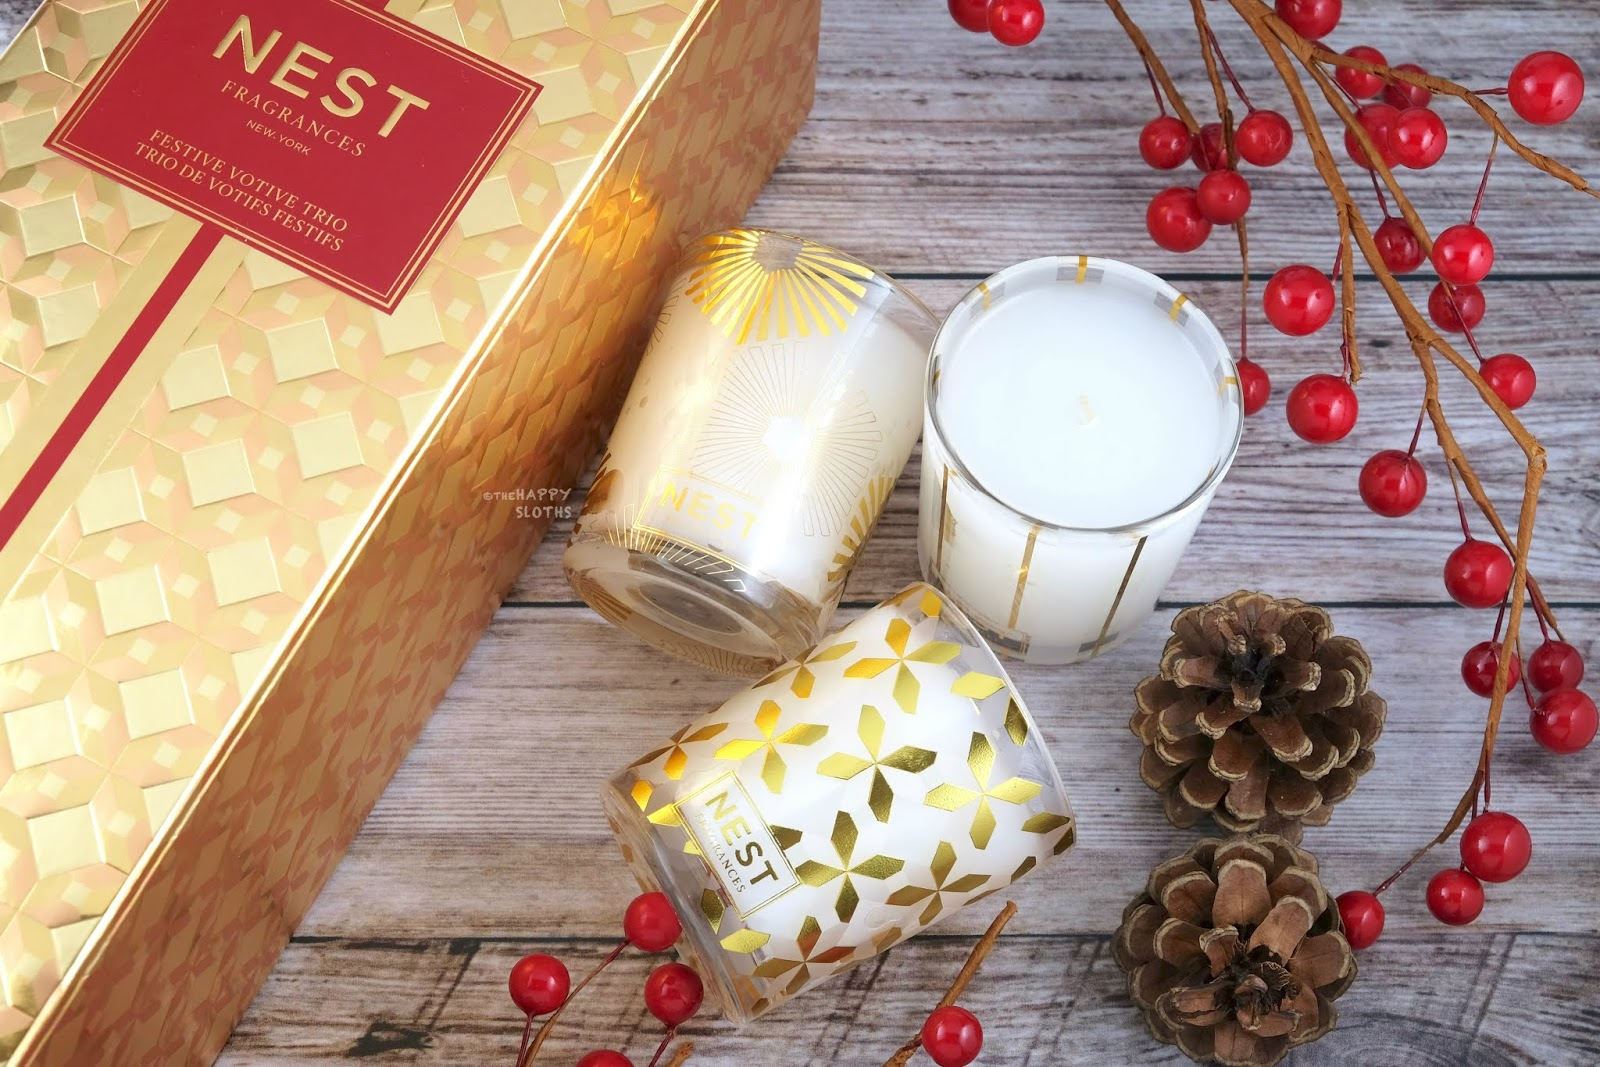 NEST Fragrances | Holiday 2019 Festive Votive Trio: Gift Guide